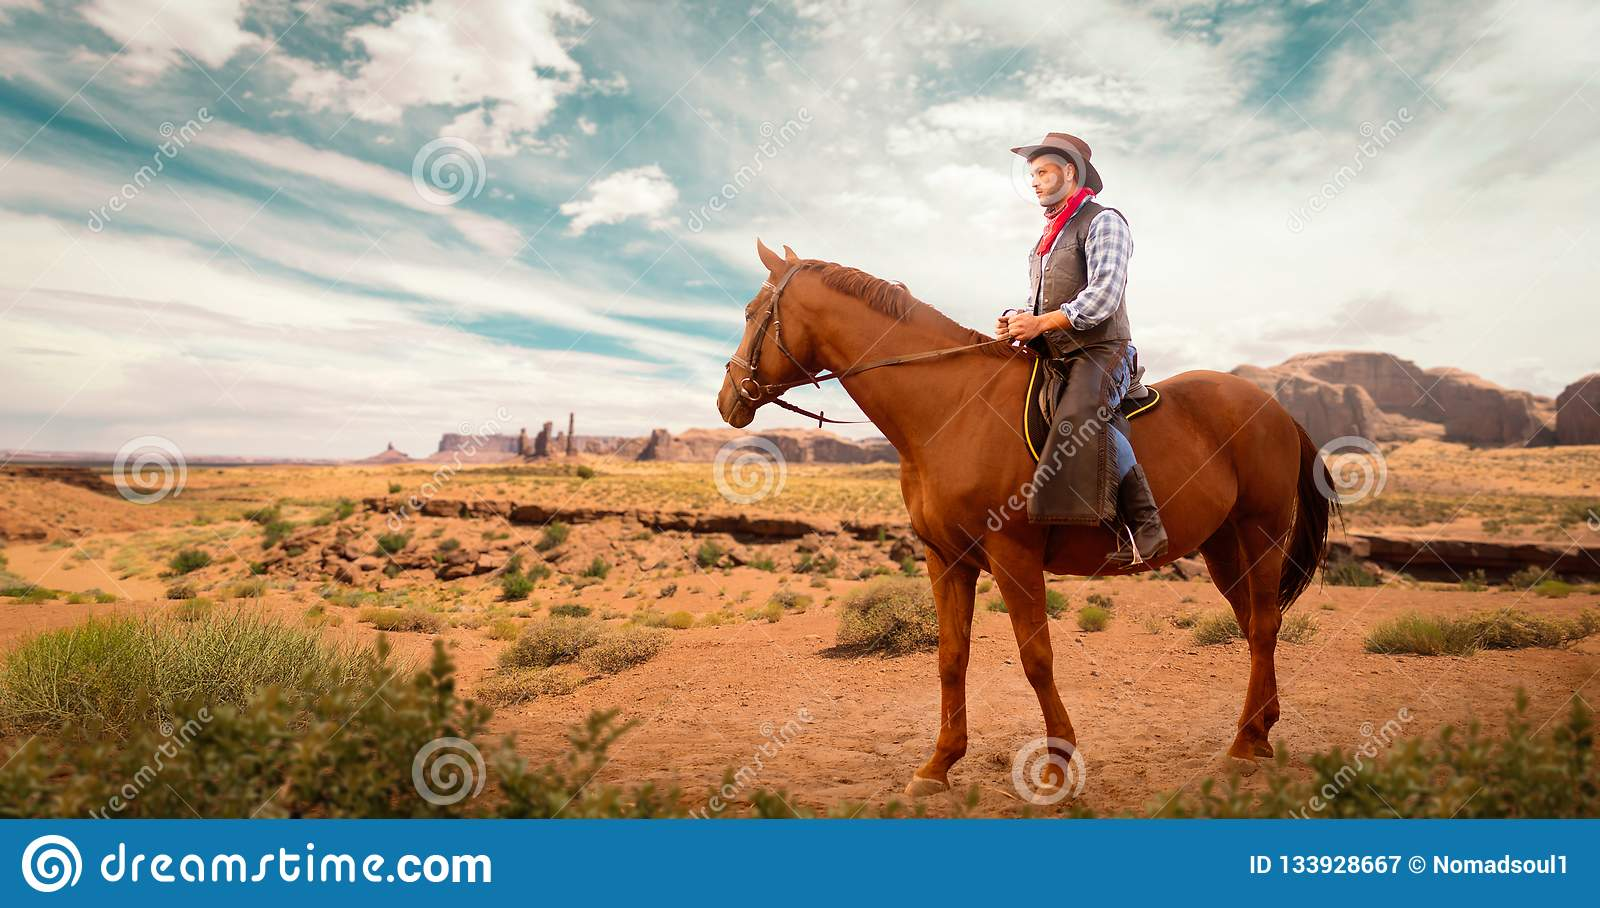 10 360 Western Horse Riding Photos Free Royalty Free Stock Photos From Dreamstime